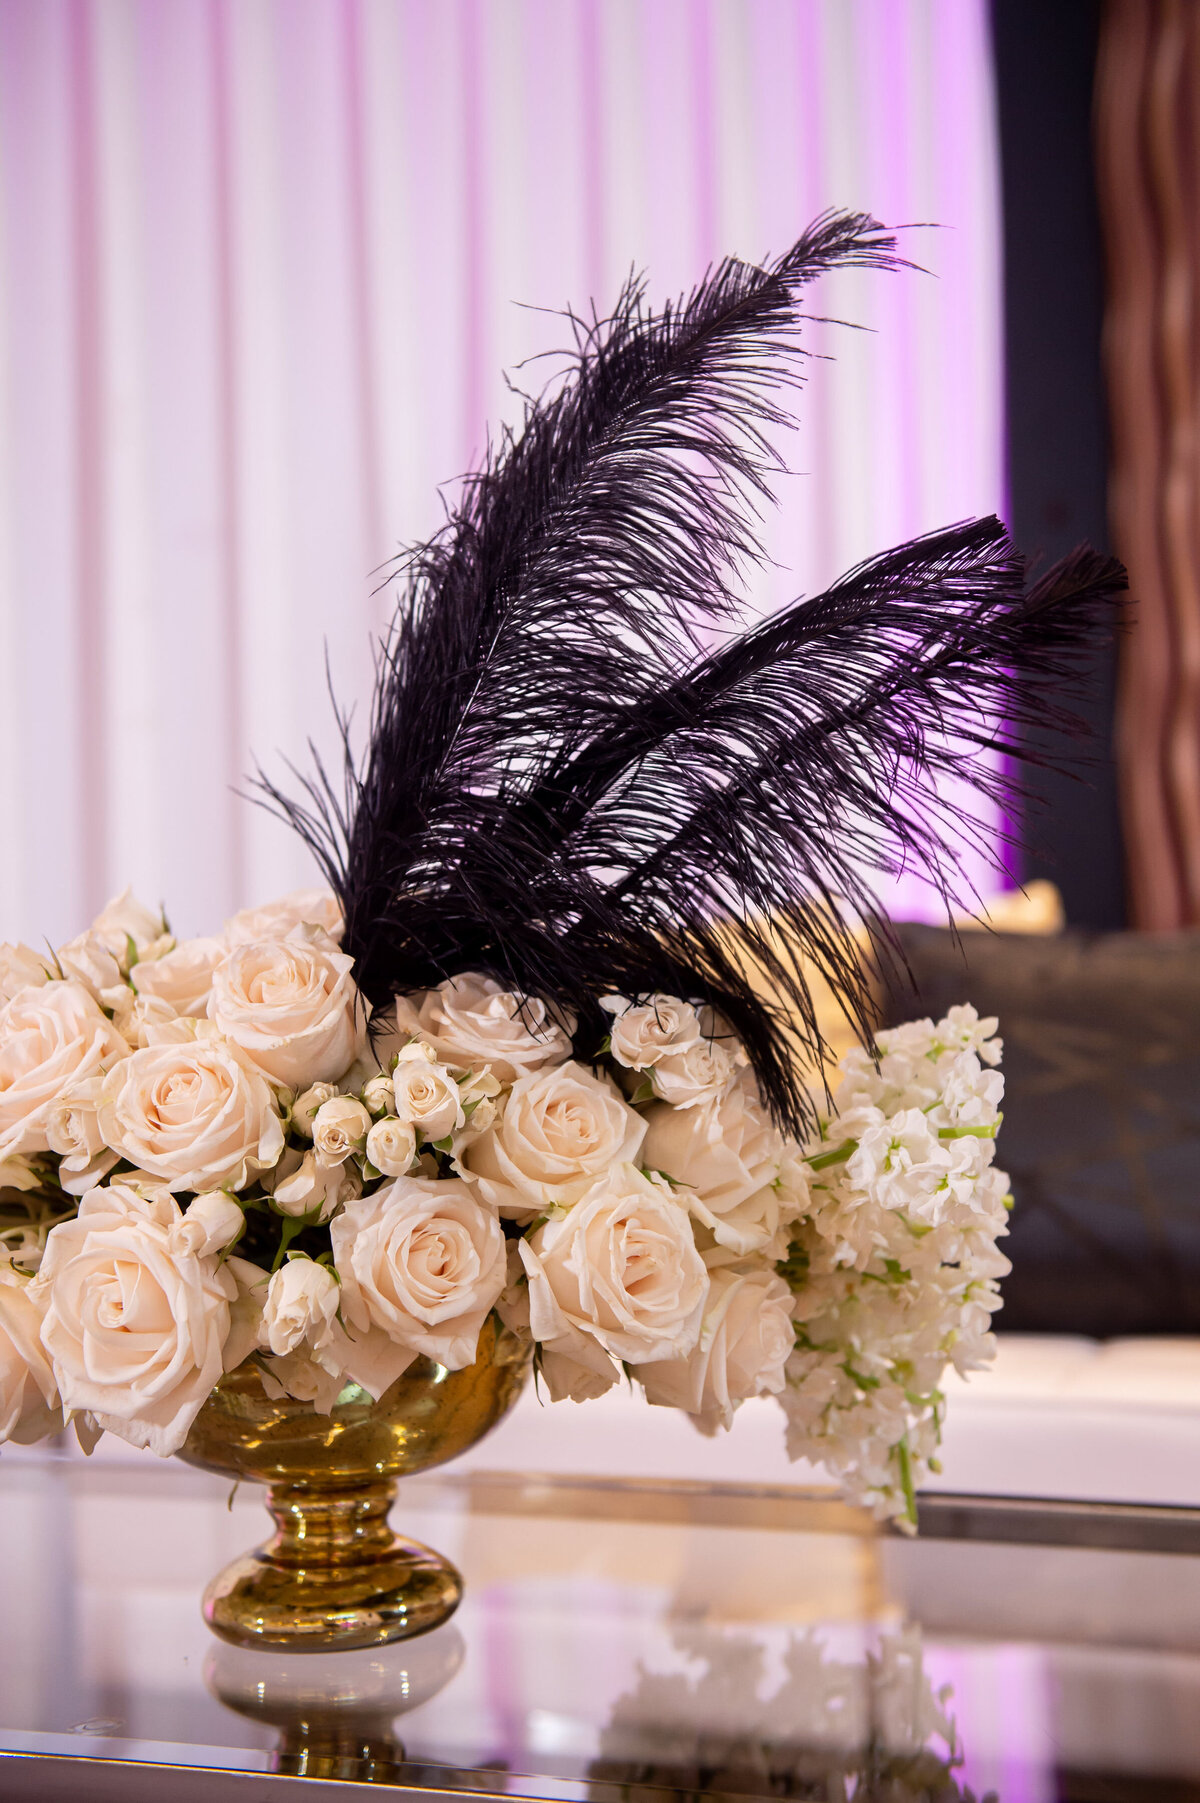 34thstreetevents-whiteflorals-miami-corporategala